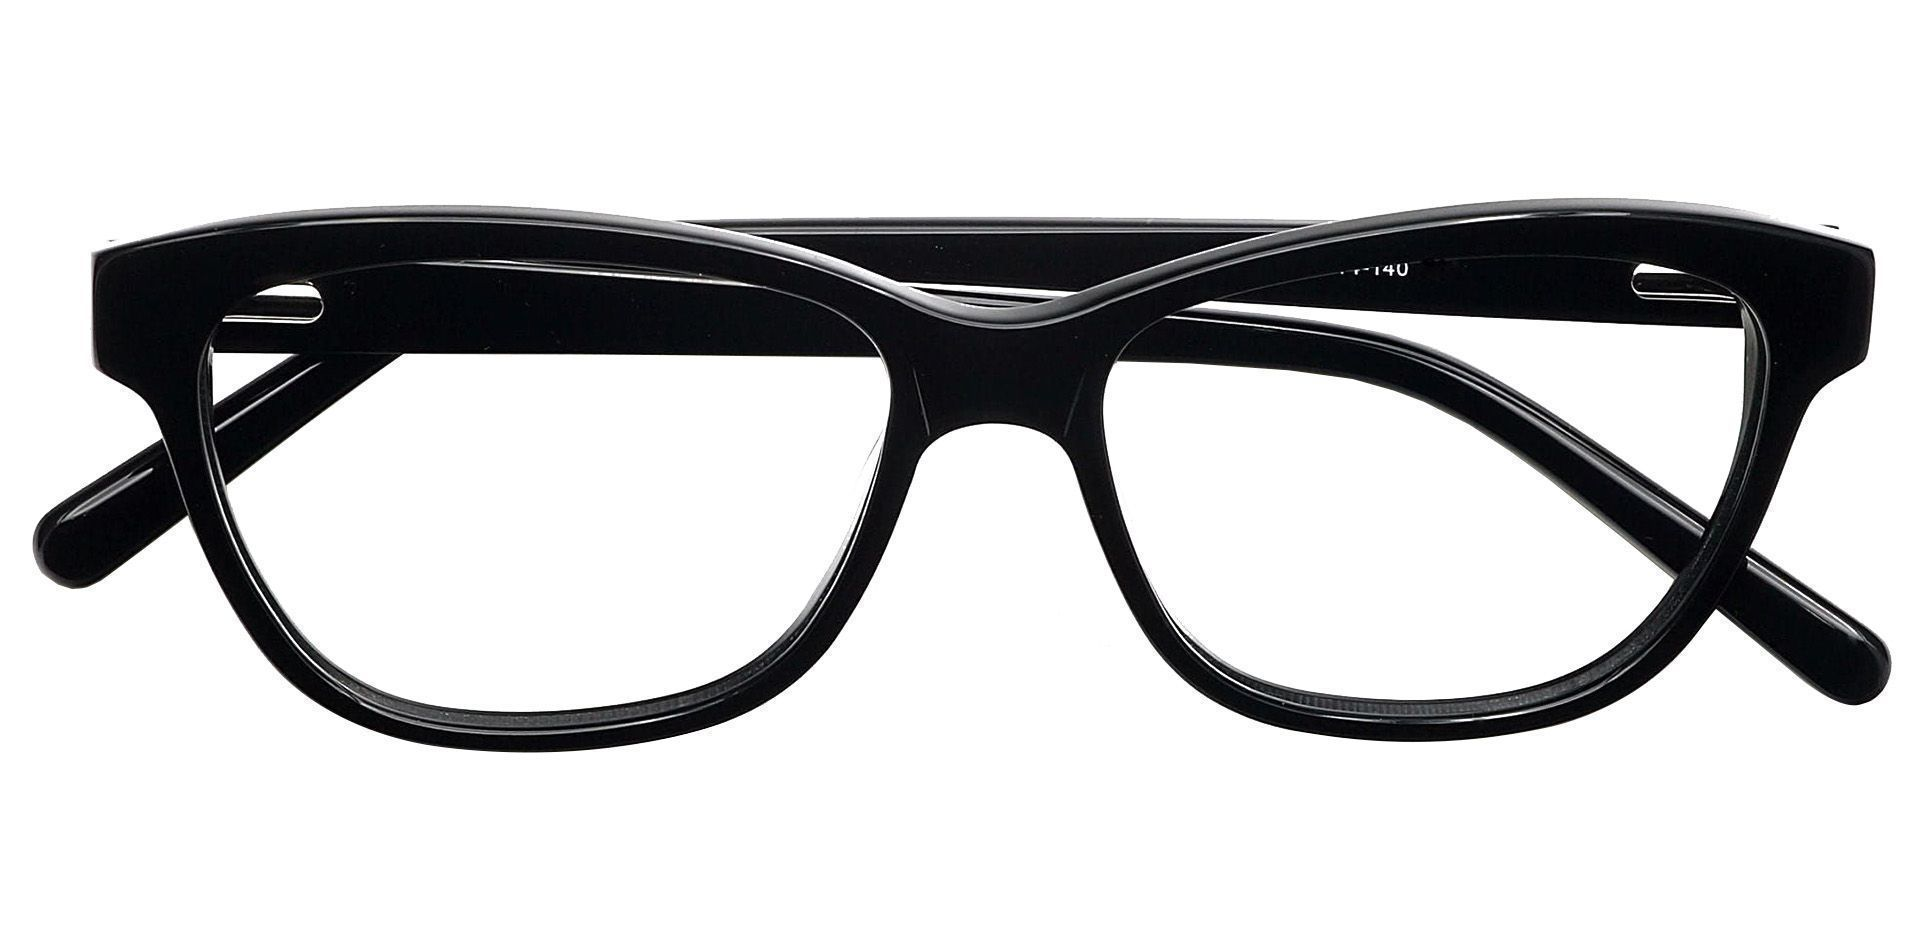 Swell Cat-eye Progressive Glasses - Black